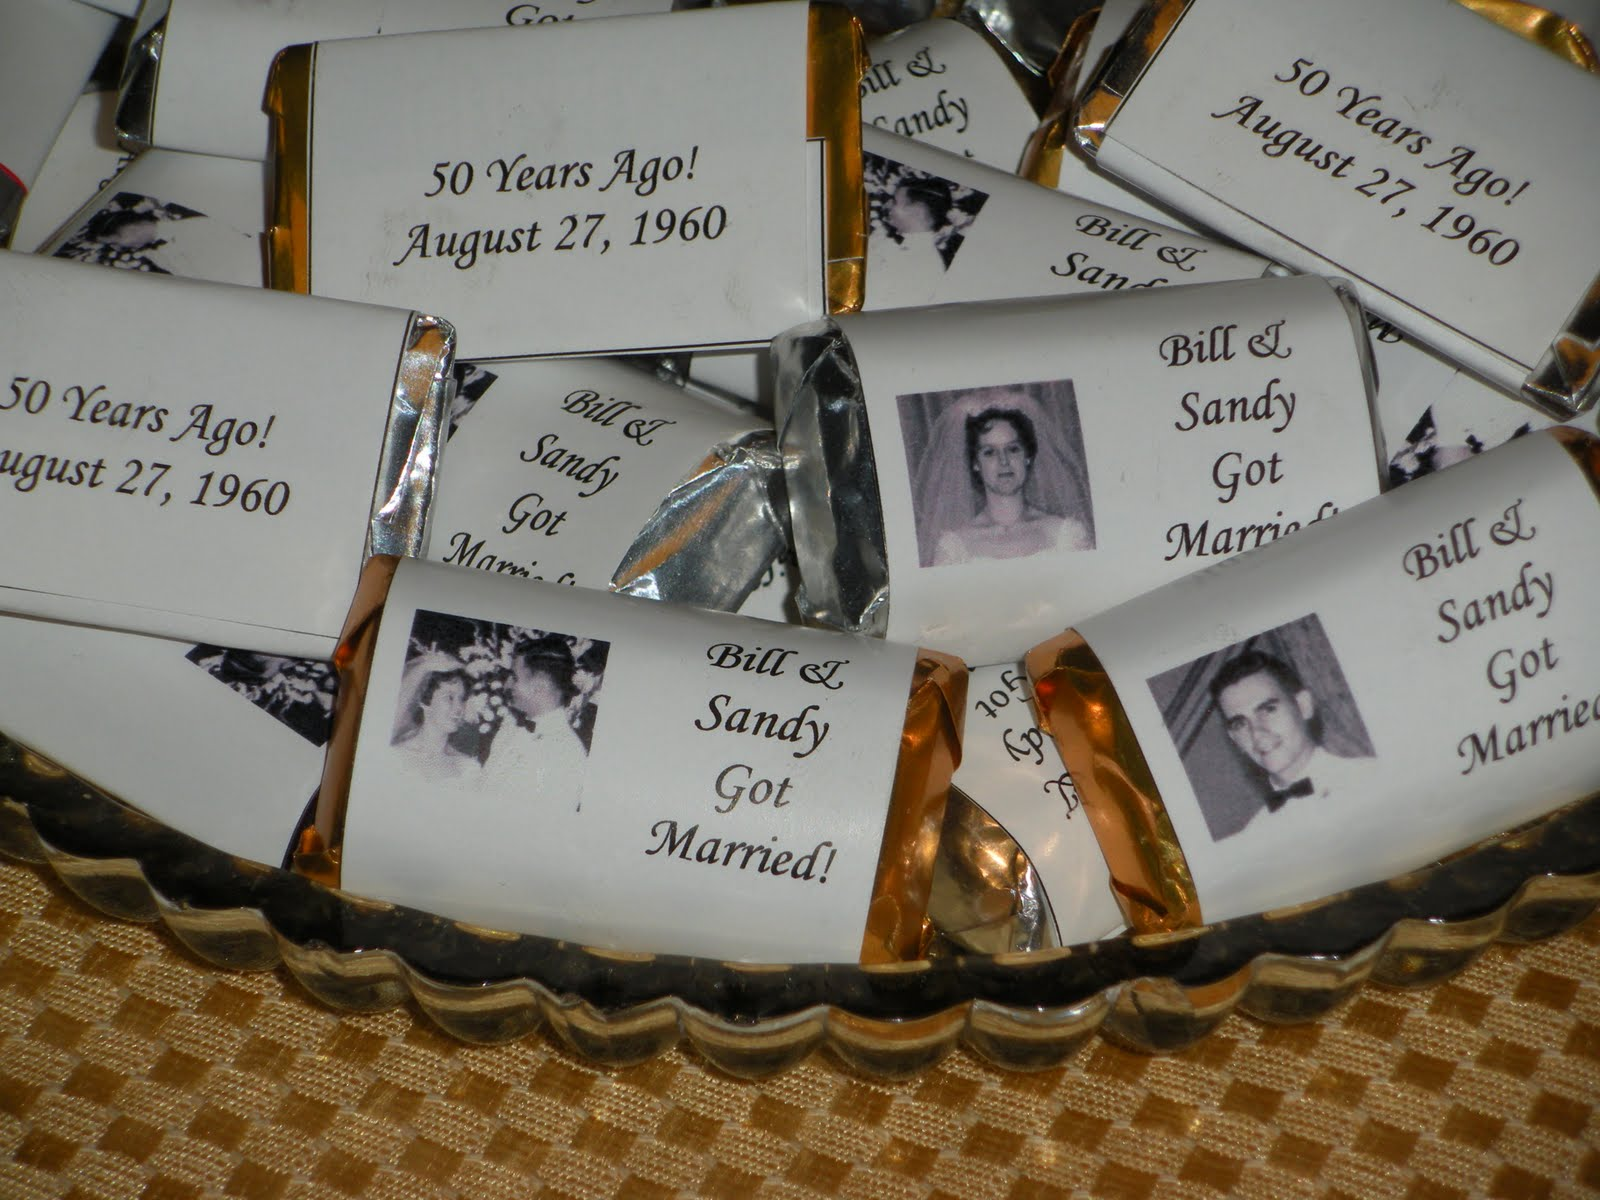 50th Wedding Anniversary Gift Ideas For Wife: NOT A REAL HOUSEWIFE: Happy 50th Anniversary To My Parents